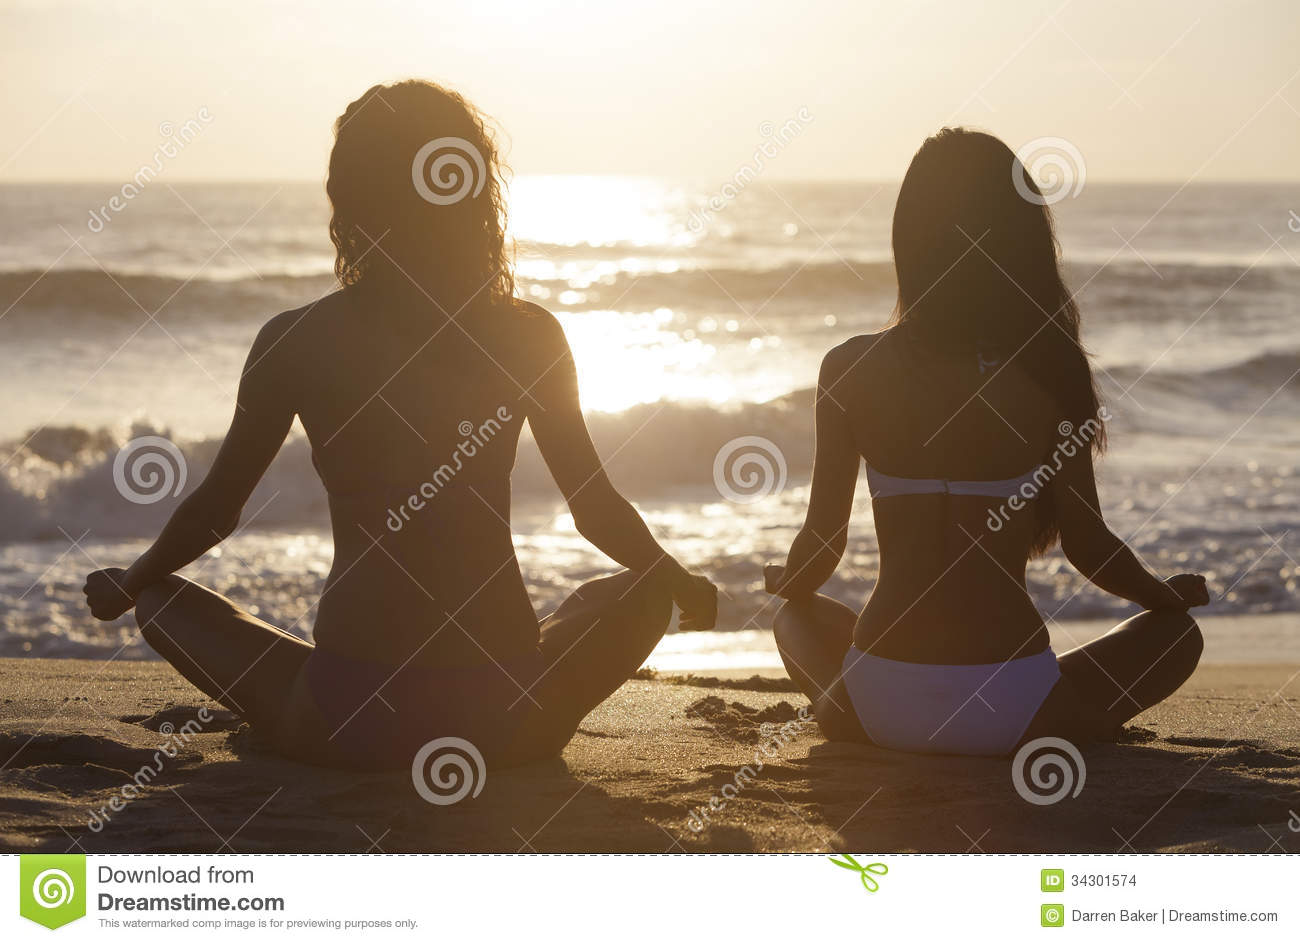 sunrise beach black women dating site Bookofmatchescom™ provides sunrise beach sexy dating ads and sexy dates whether you want black, white, older, younger, skinny, big, or hot women we have all kinds of personal ads bom is unlike any other sunrise beach date site in that it provides a fun environment online and on your mobile phone.